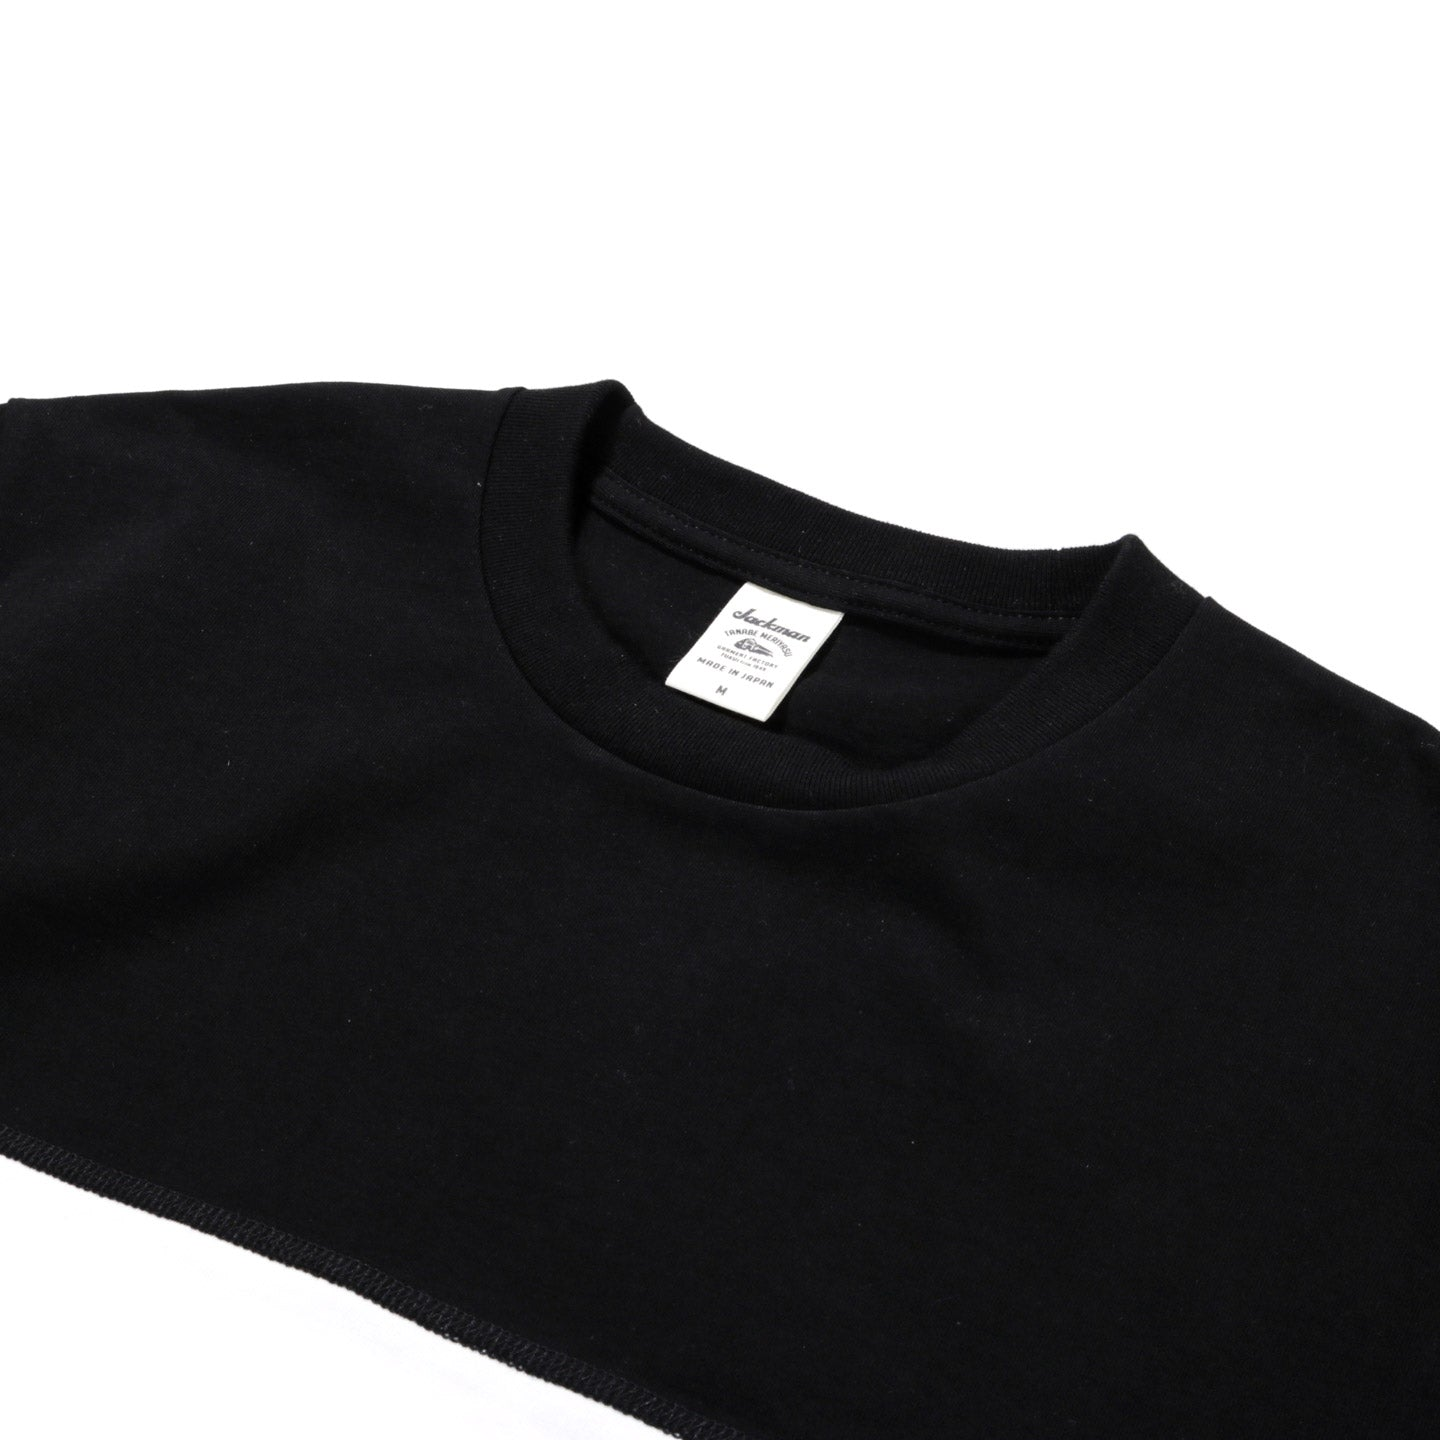 JACKMAN BORDER T-SHIRT BLACK / WHITE 2 SEAM